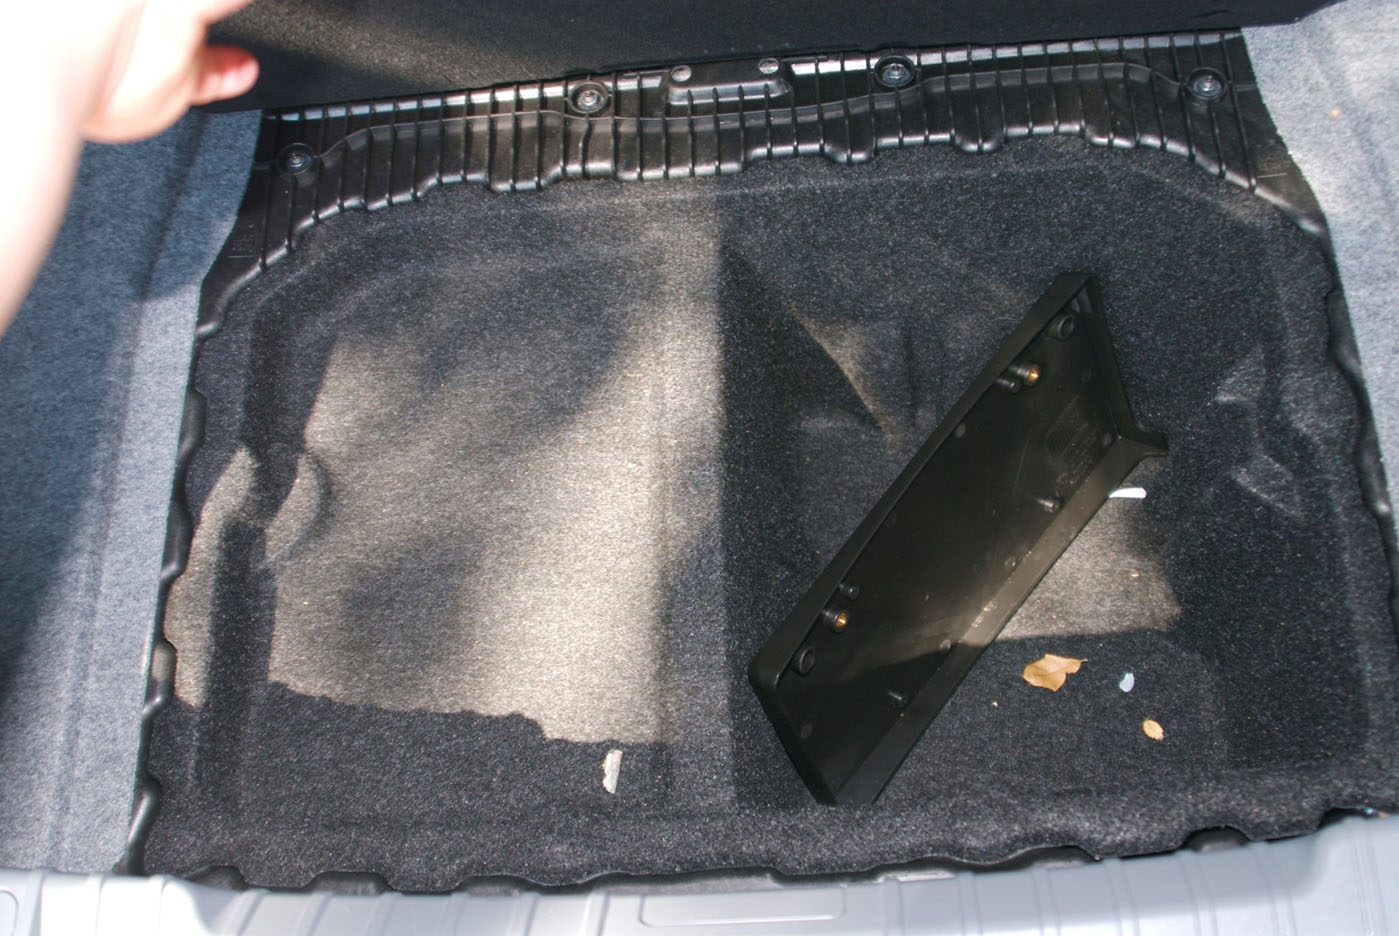 Cheap Car Window Replacement >> March 2 , 2007 I recently had a variety of minor service encounters with my E46 323i (Y2K). The ...